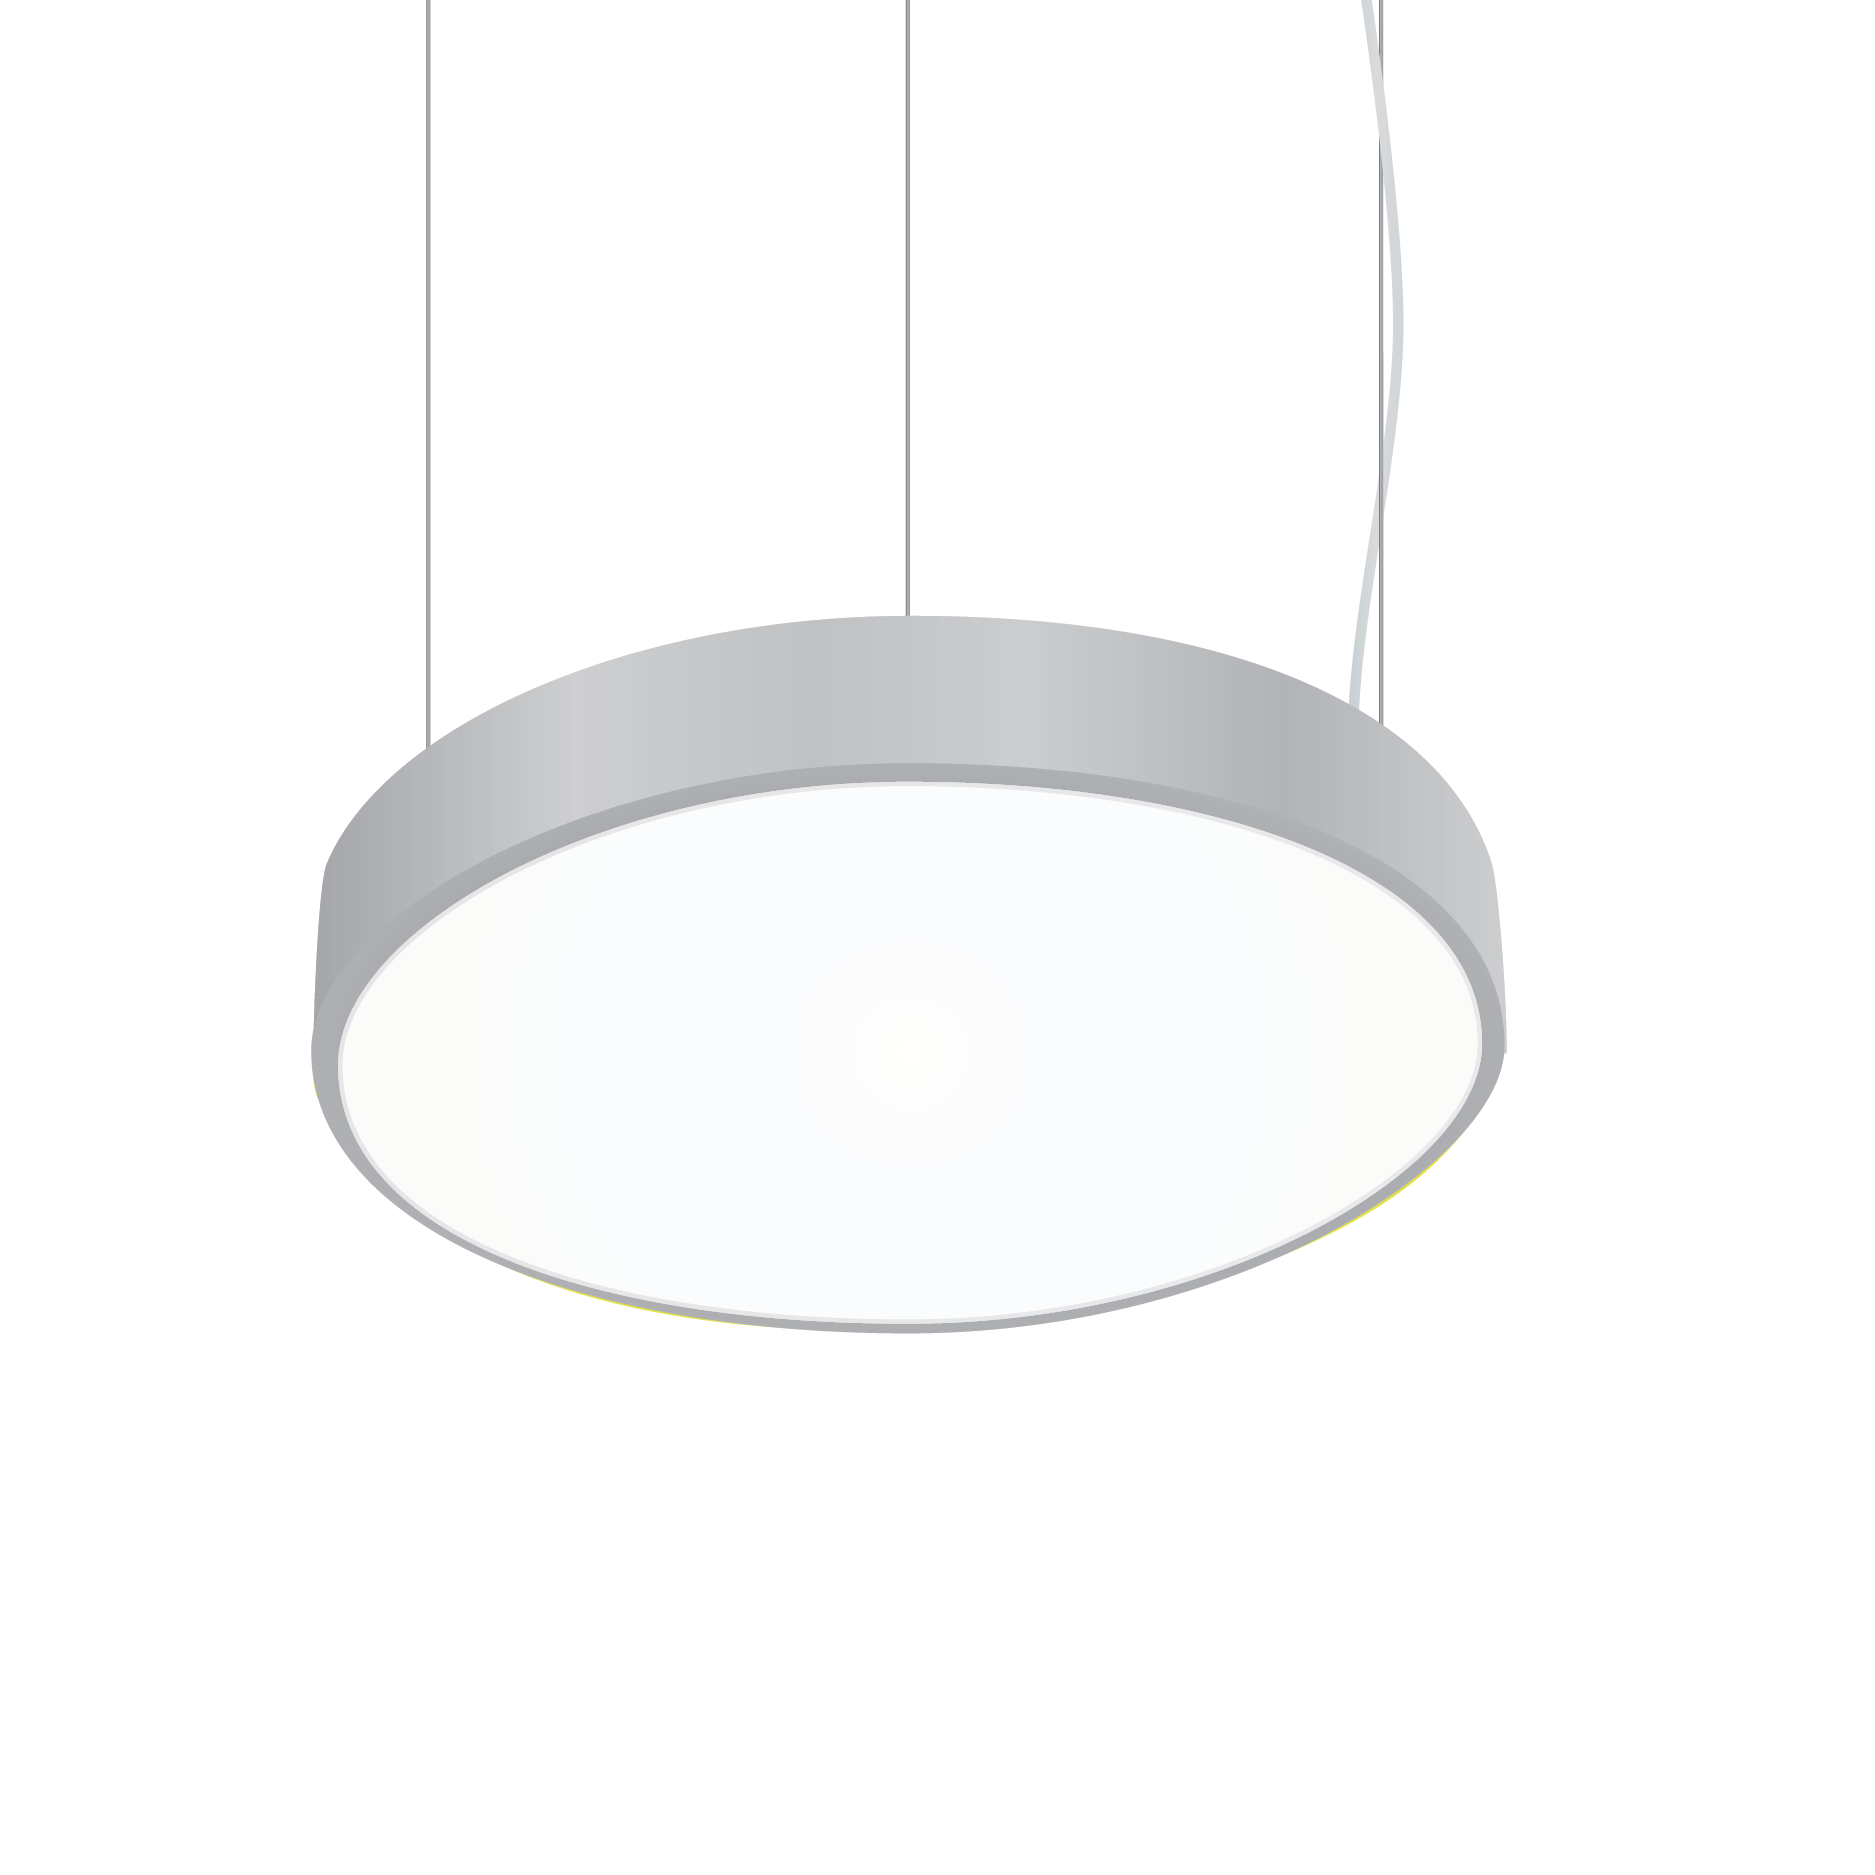 Luminaire Lighting Alcon Lighting 12201 P 1 Orbic Architectural Led 14 Inch Round Pendant Mount Direct Light Luminaire